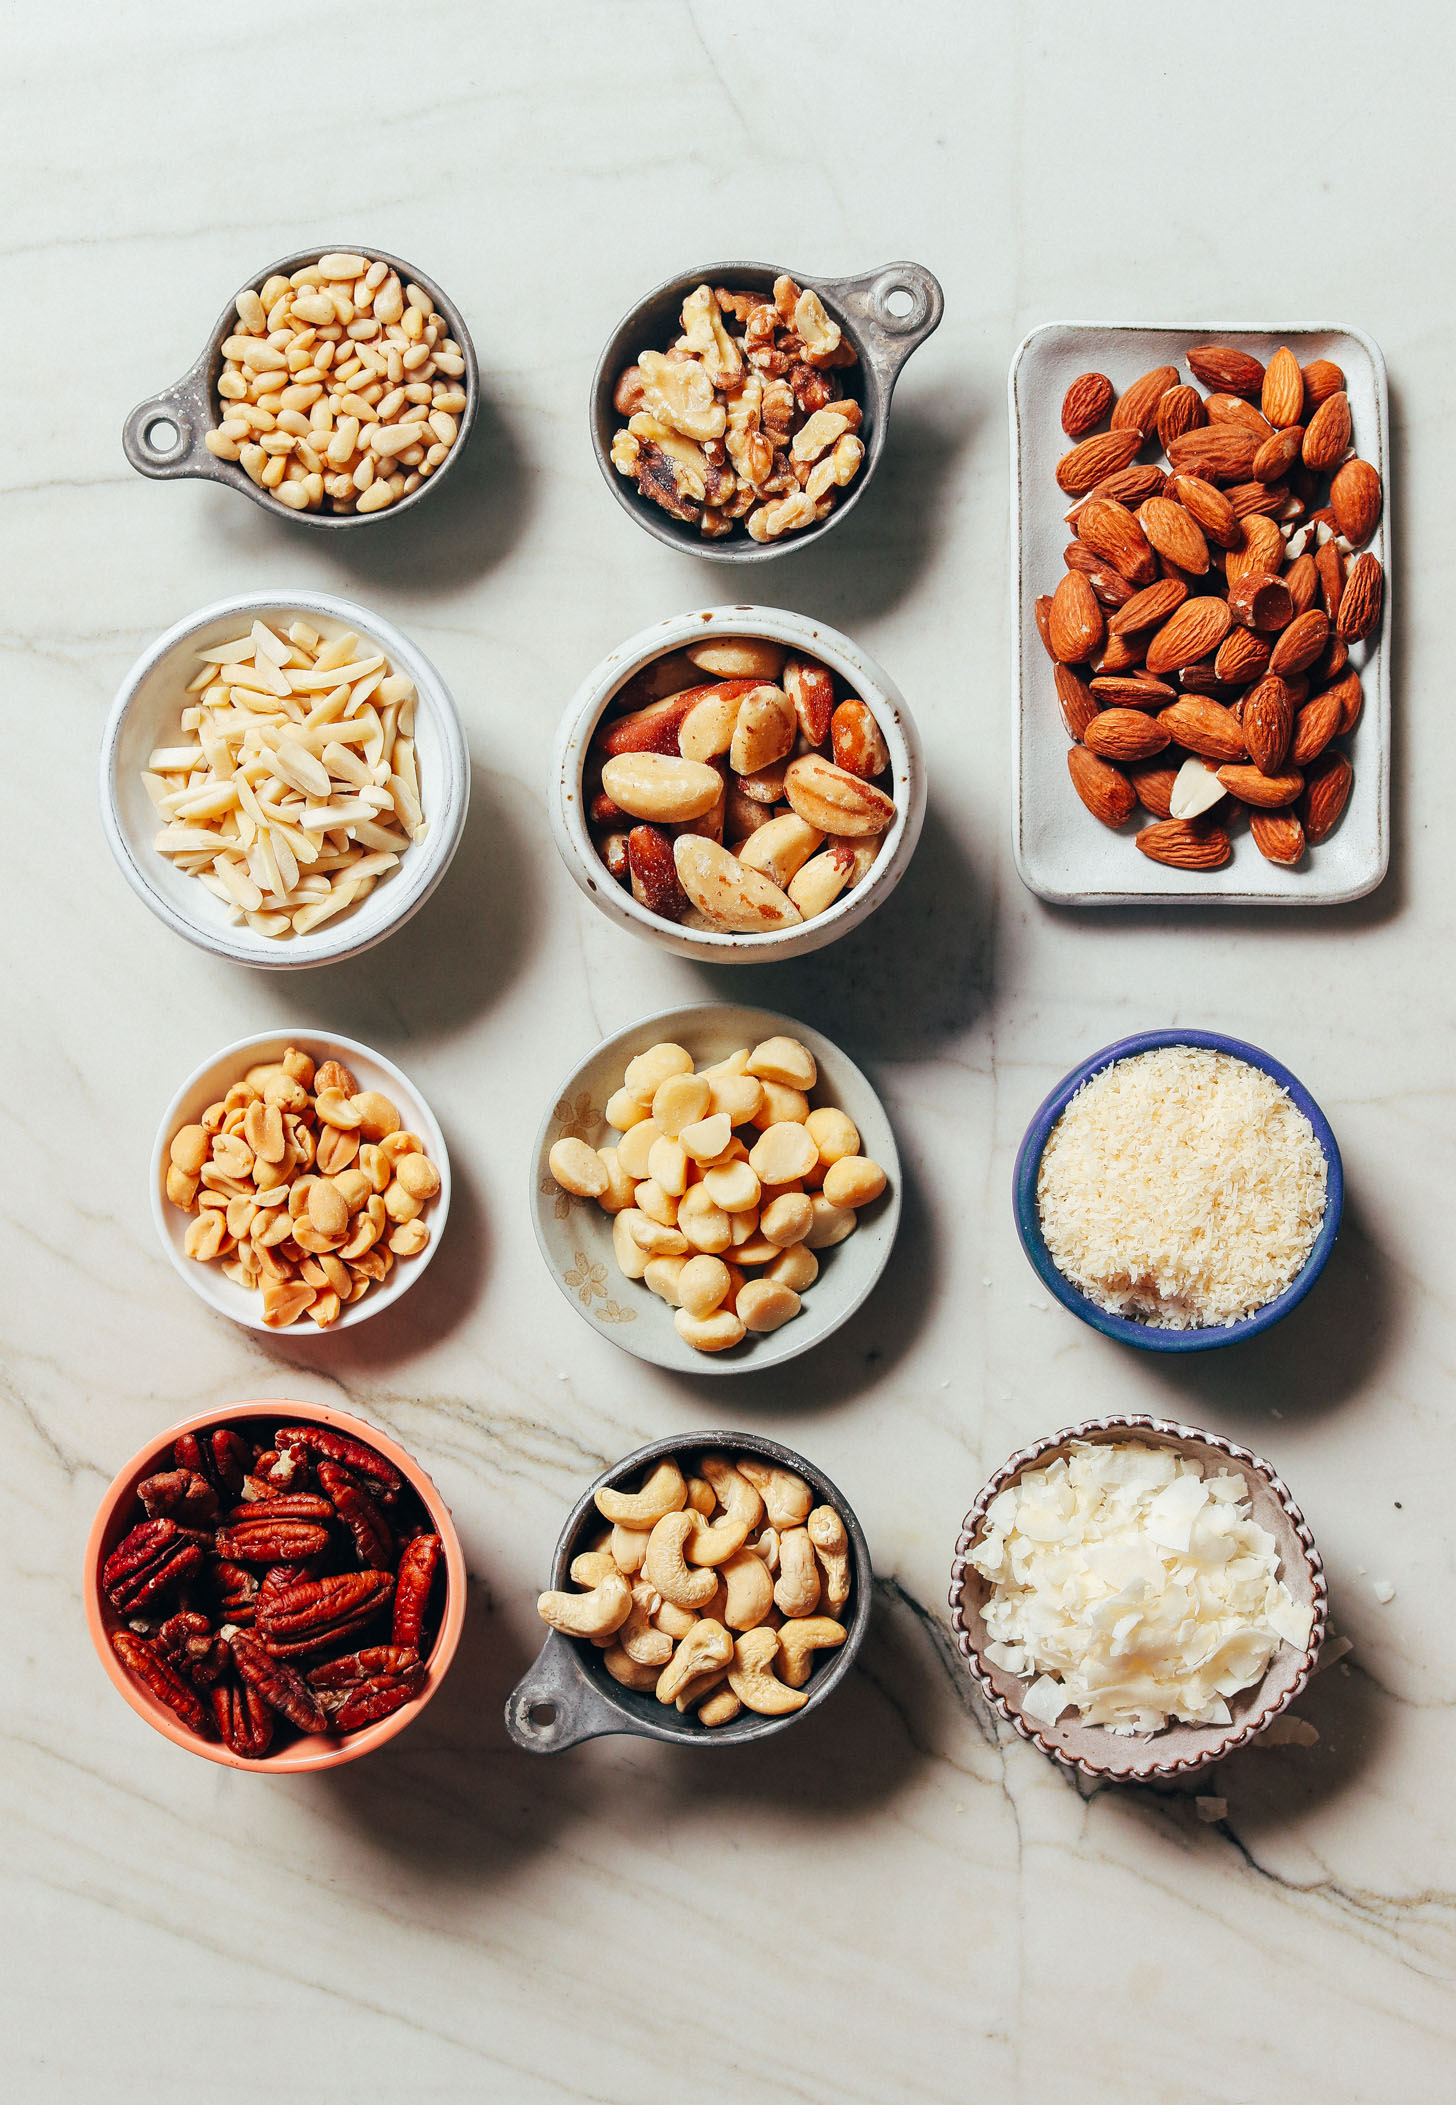 Various nuts and seeds included in our guide on How to Stock Your Pantry